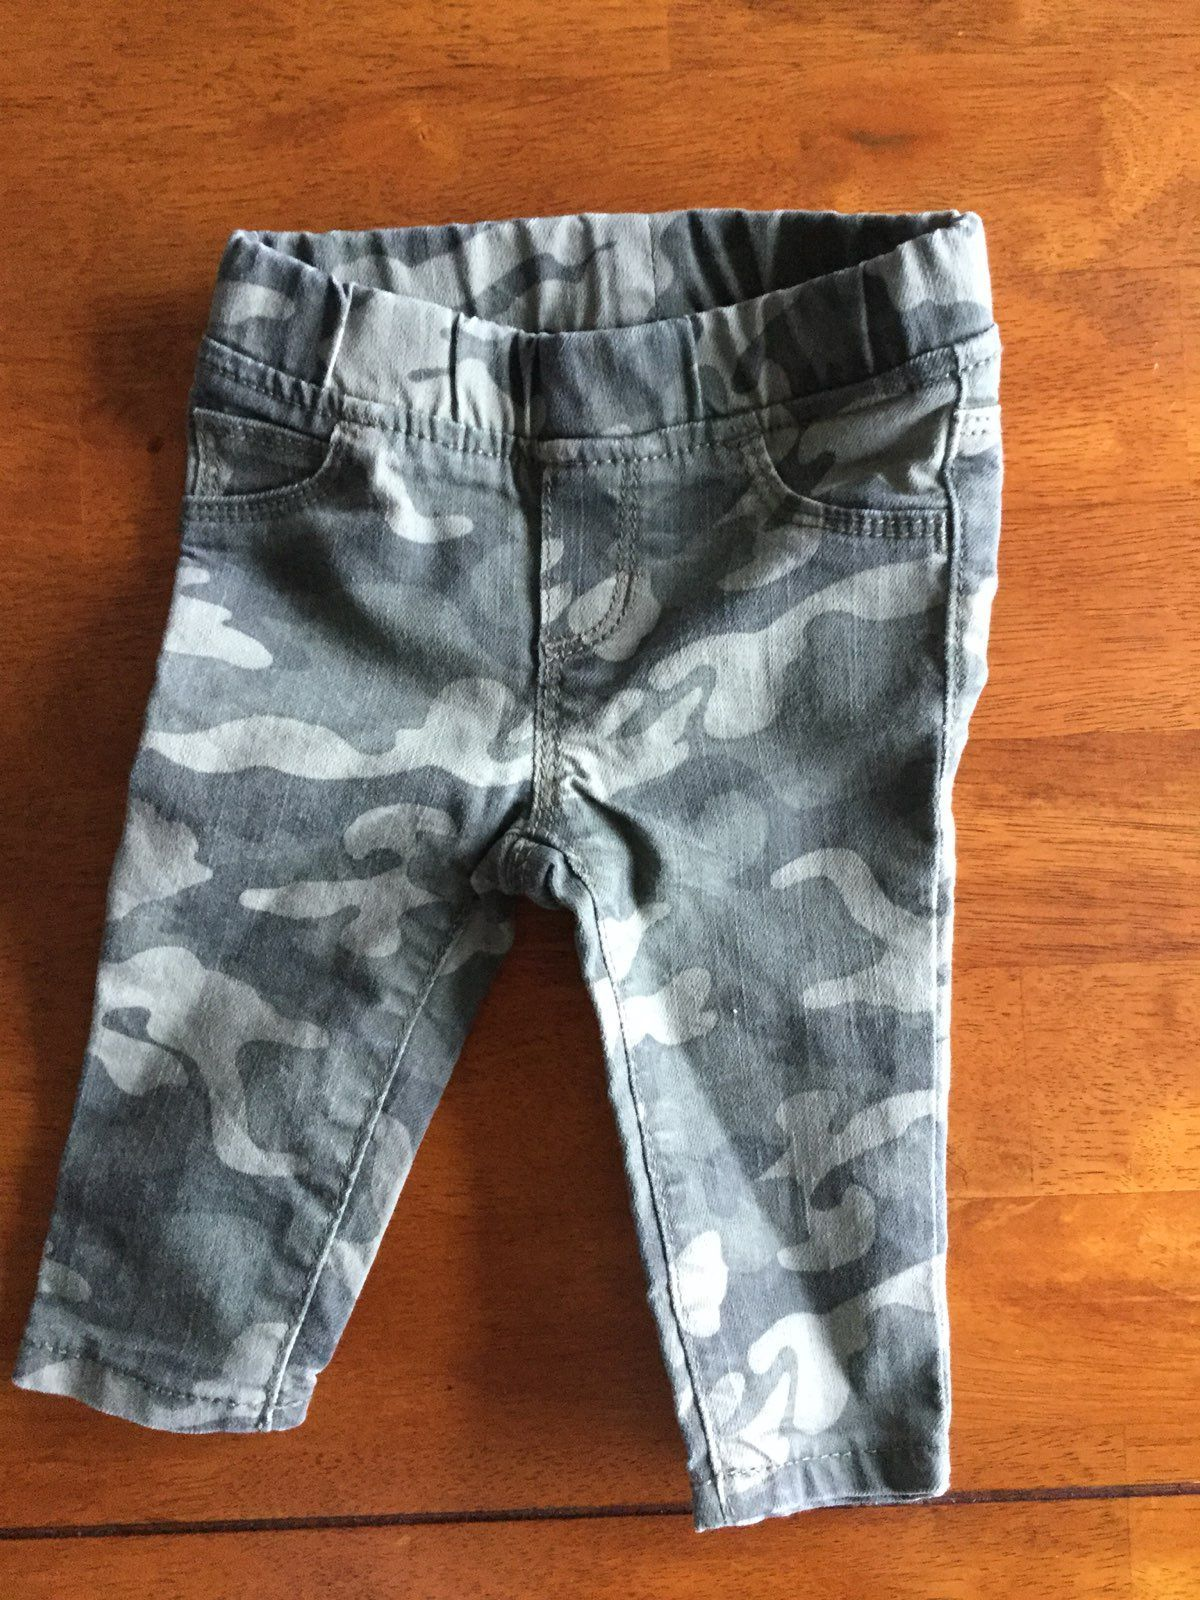 Camo Skinny Jeans 3-6 Months